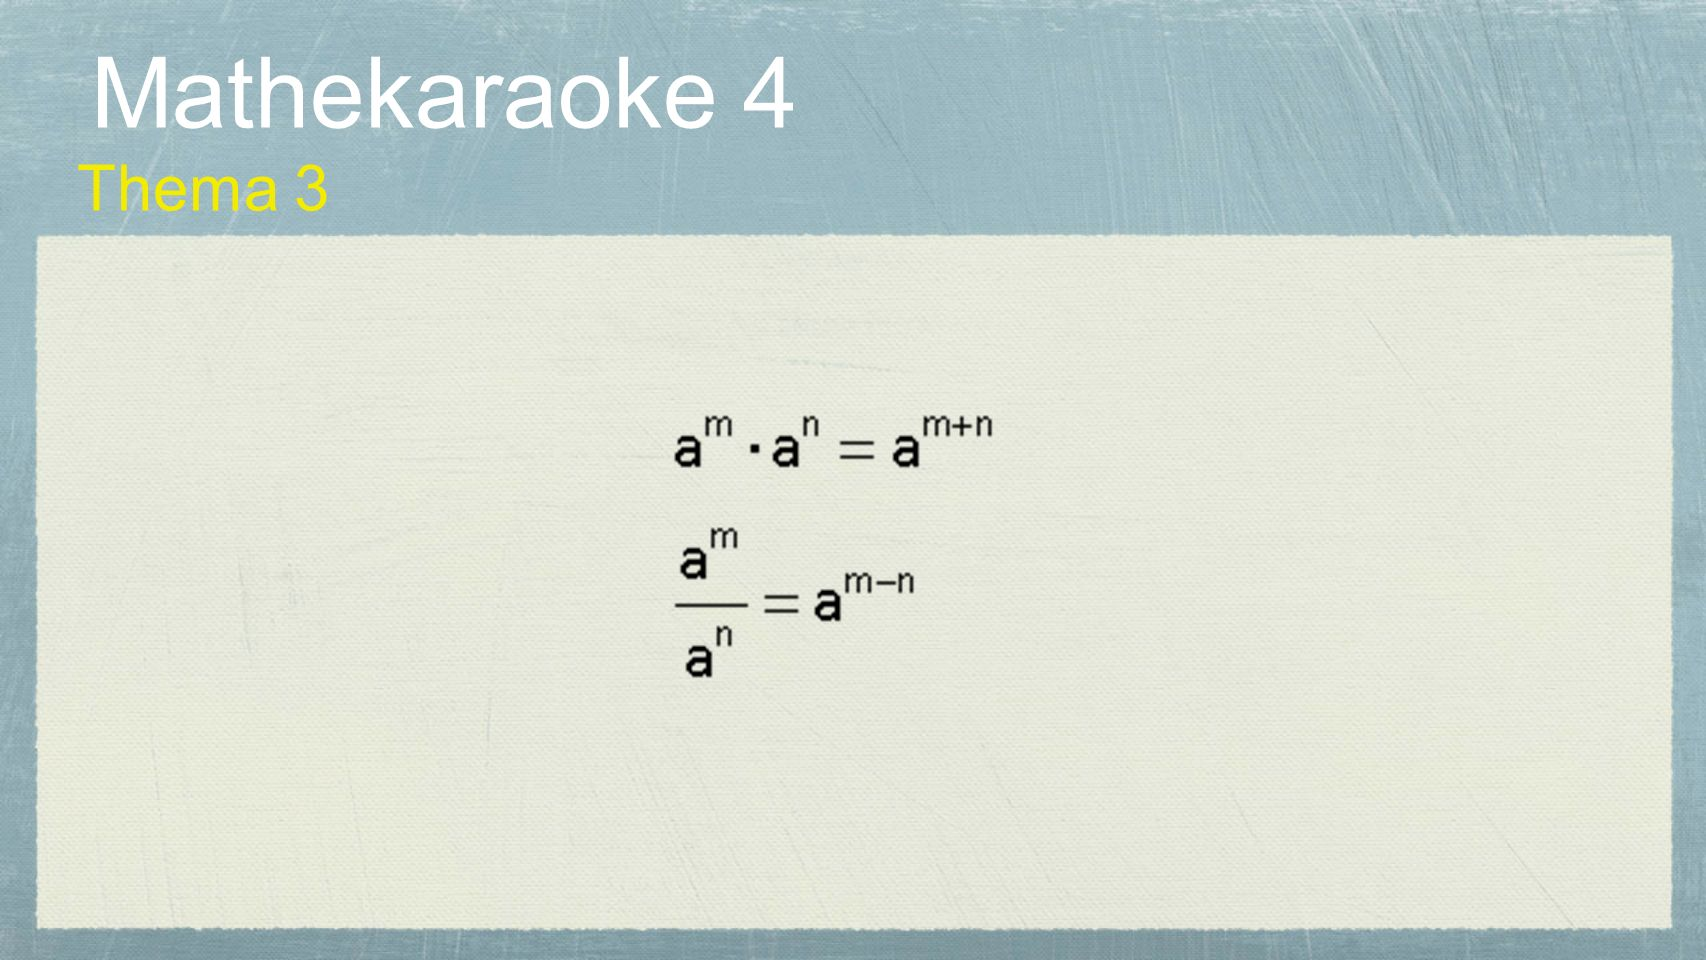 Mathekaraoke 4 Thema 3